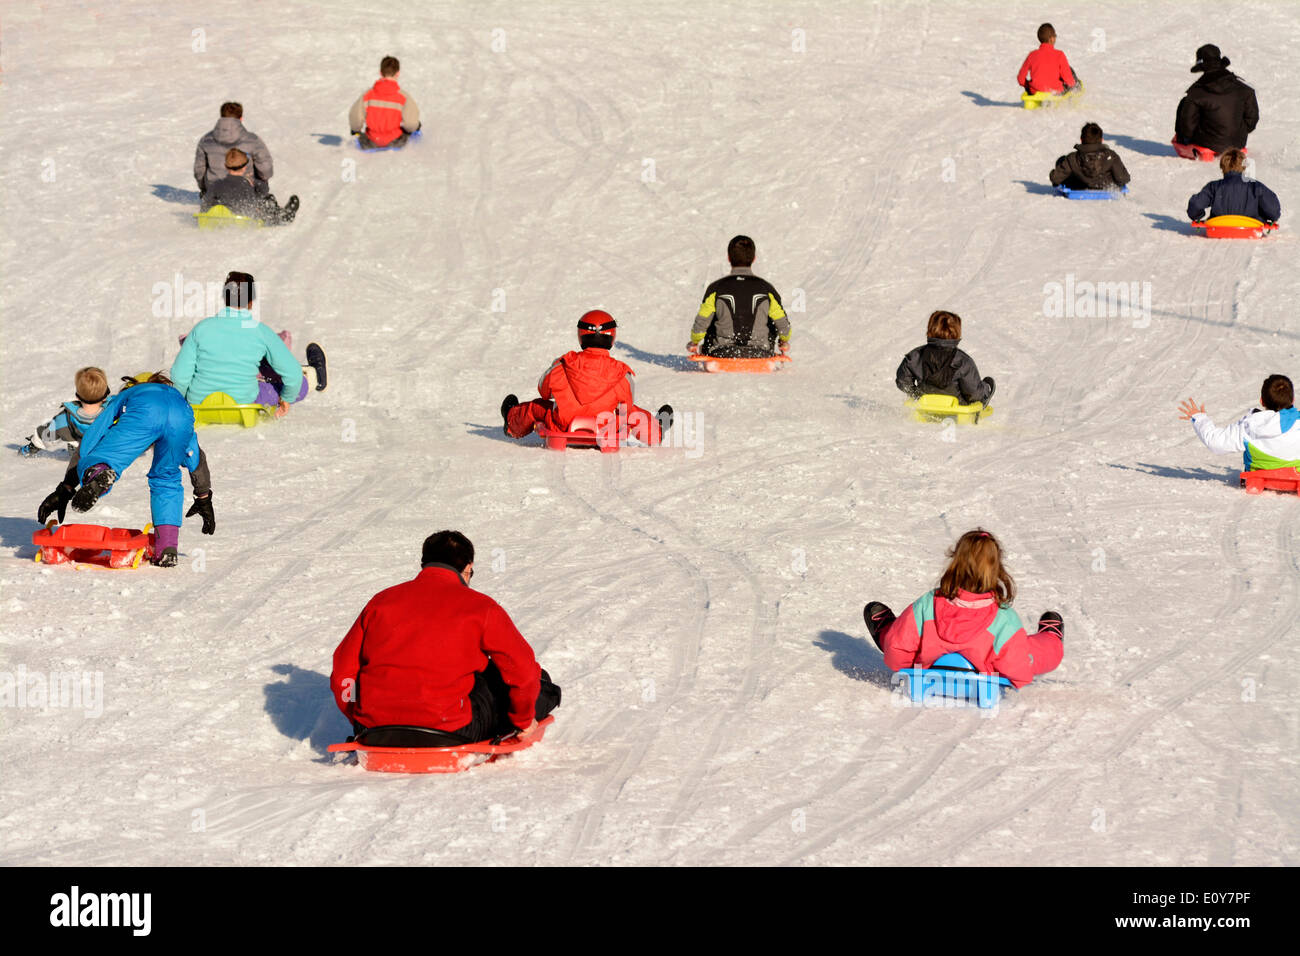 People sledging - Stock Image